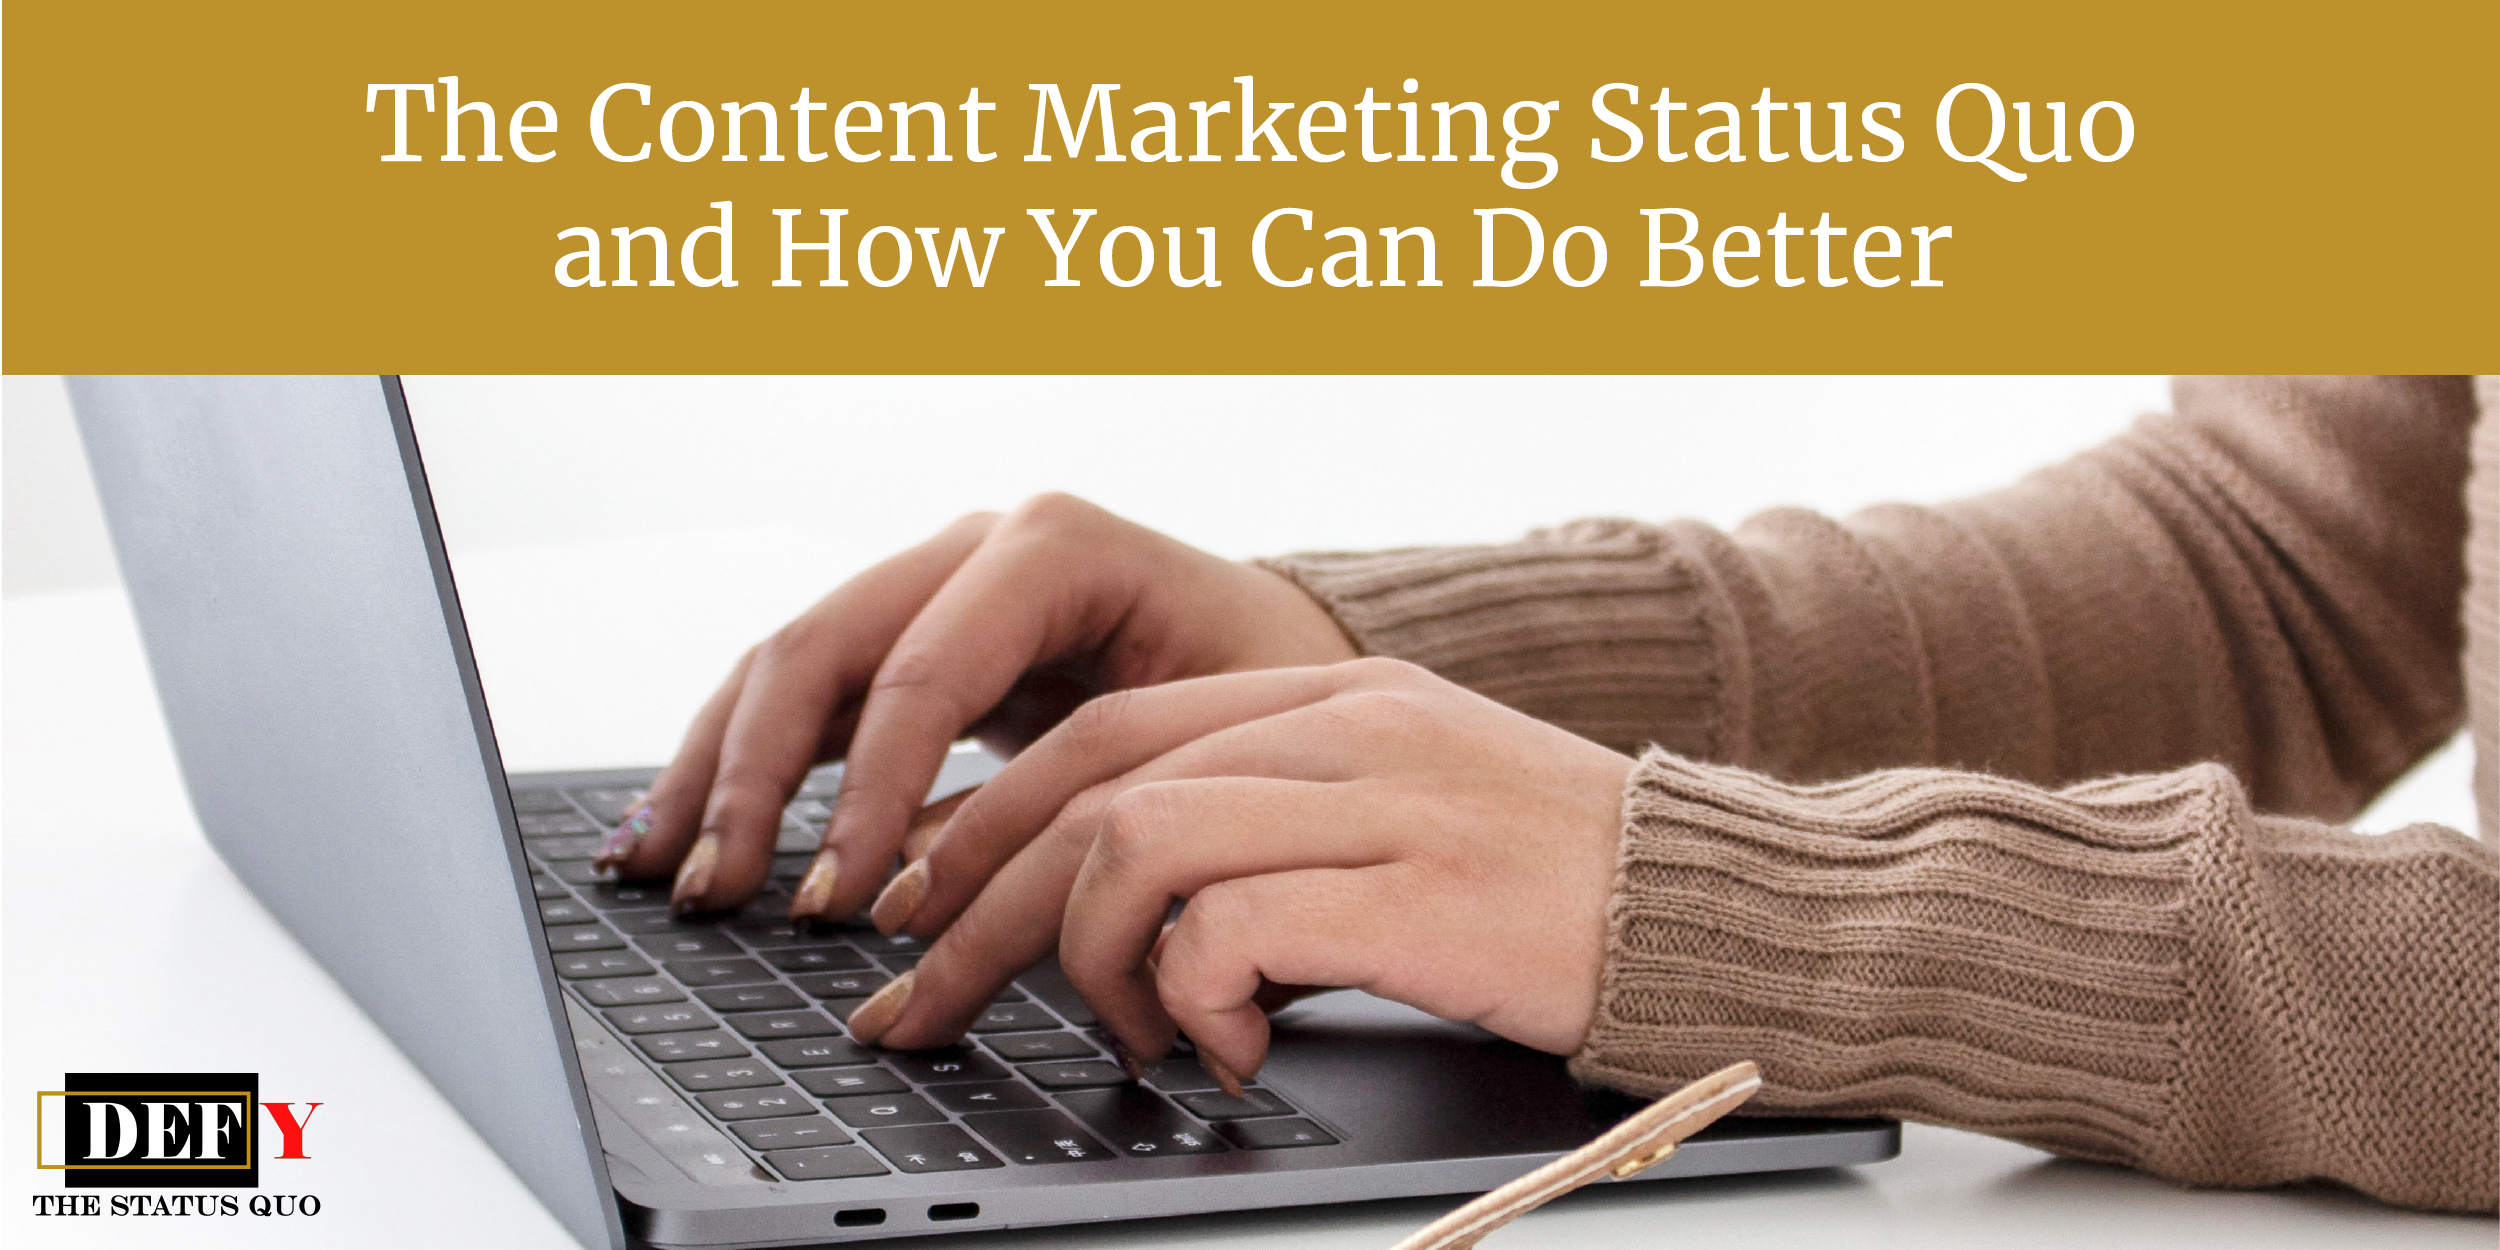 The Content Marketing Status Quo and How You Can Do Better